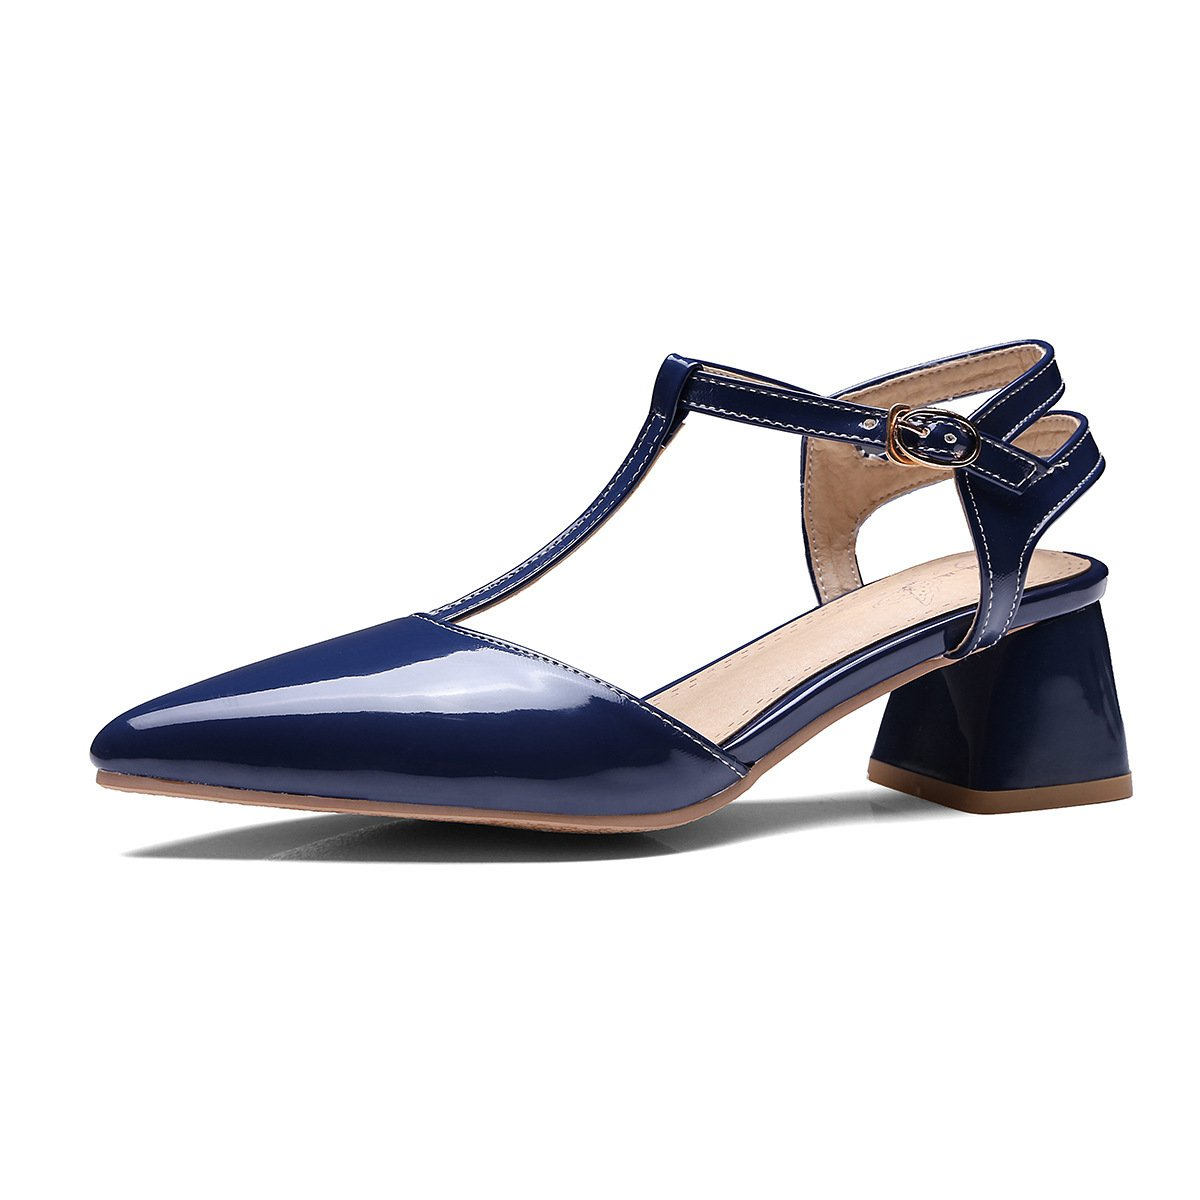 Navy GATUXUS Women's Pointed Strap Low Heel Comfort Dress Pumps Mary Jane shoes